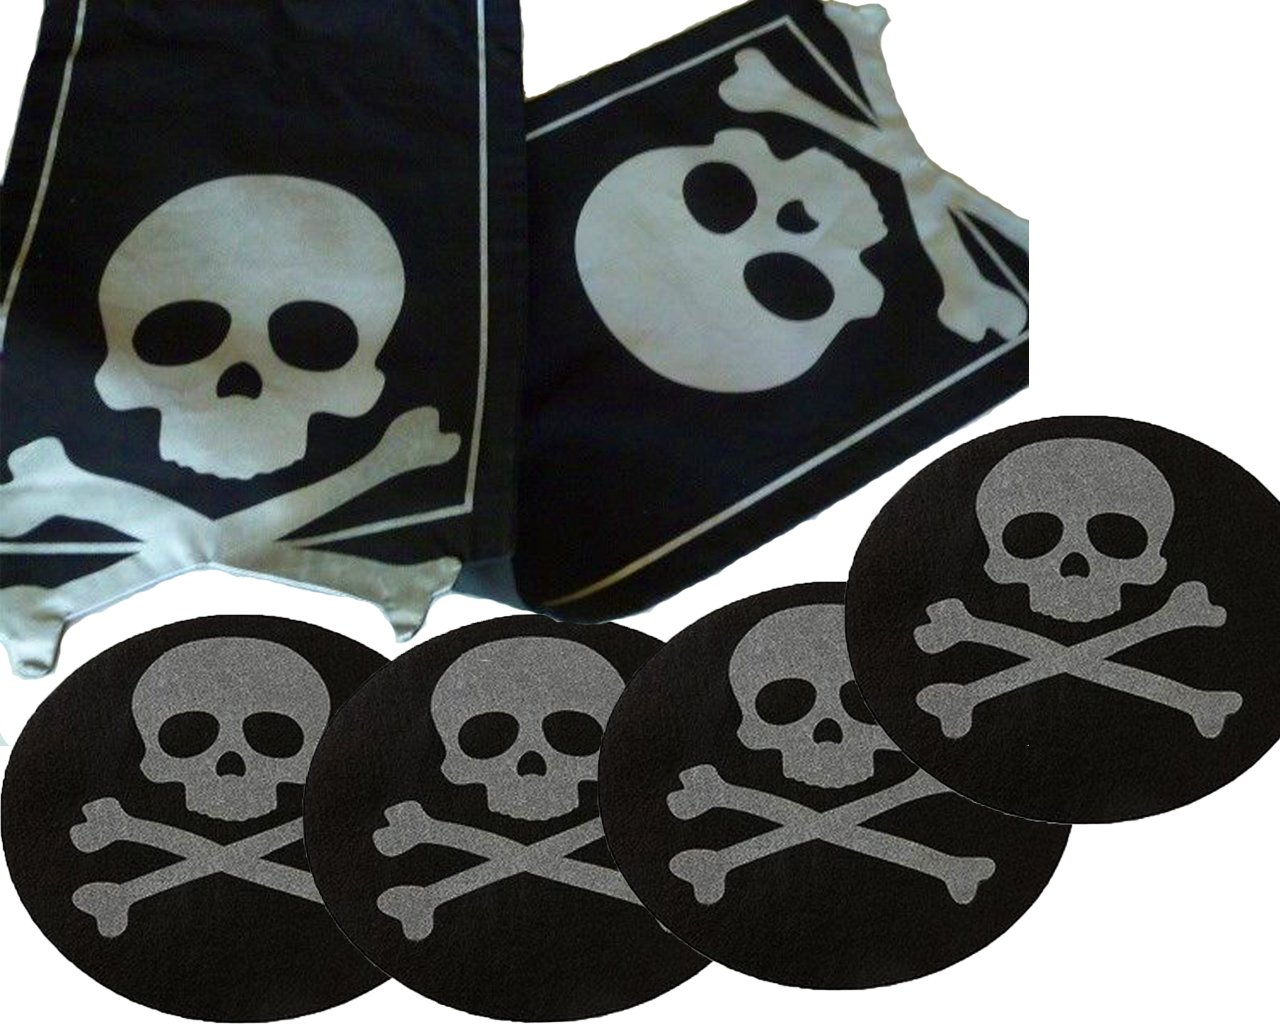 Halloween Skull & Crossbones Table Runner with Felt Round Placemats